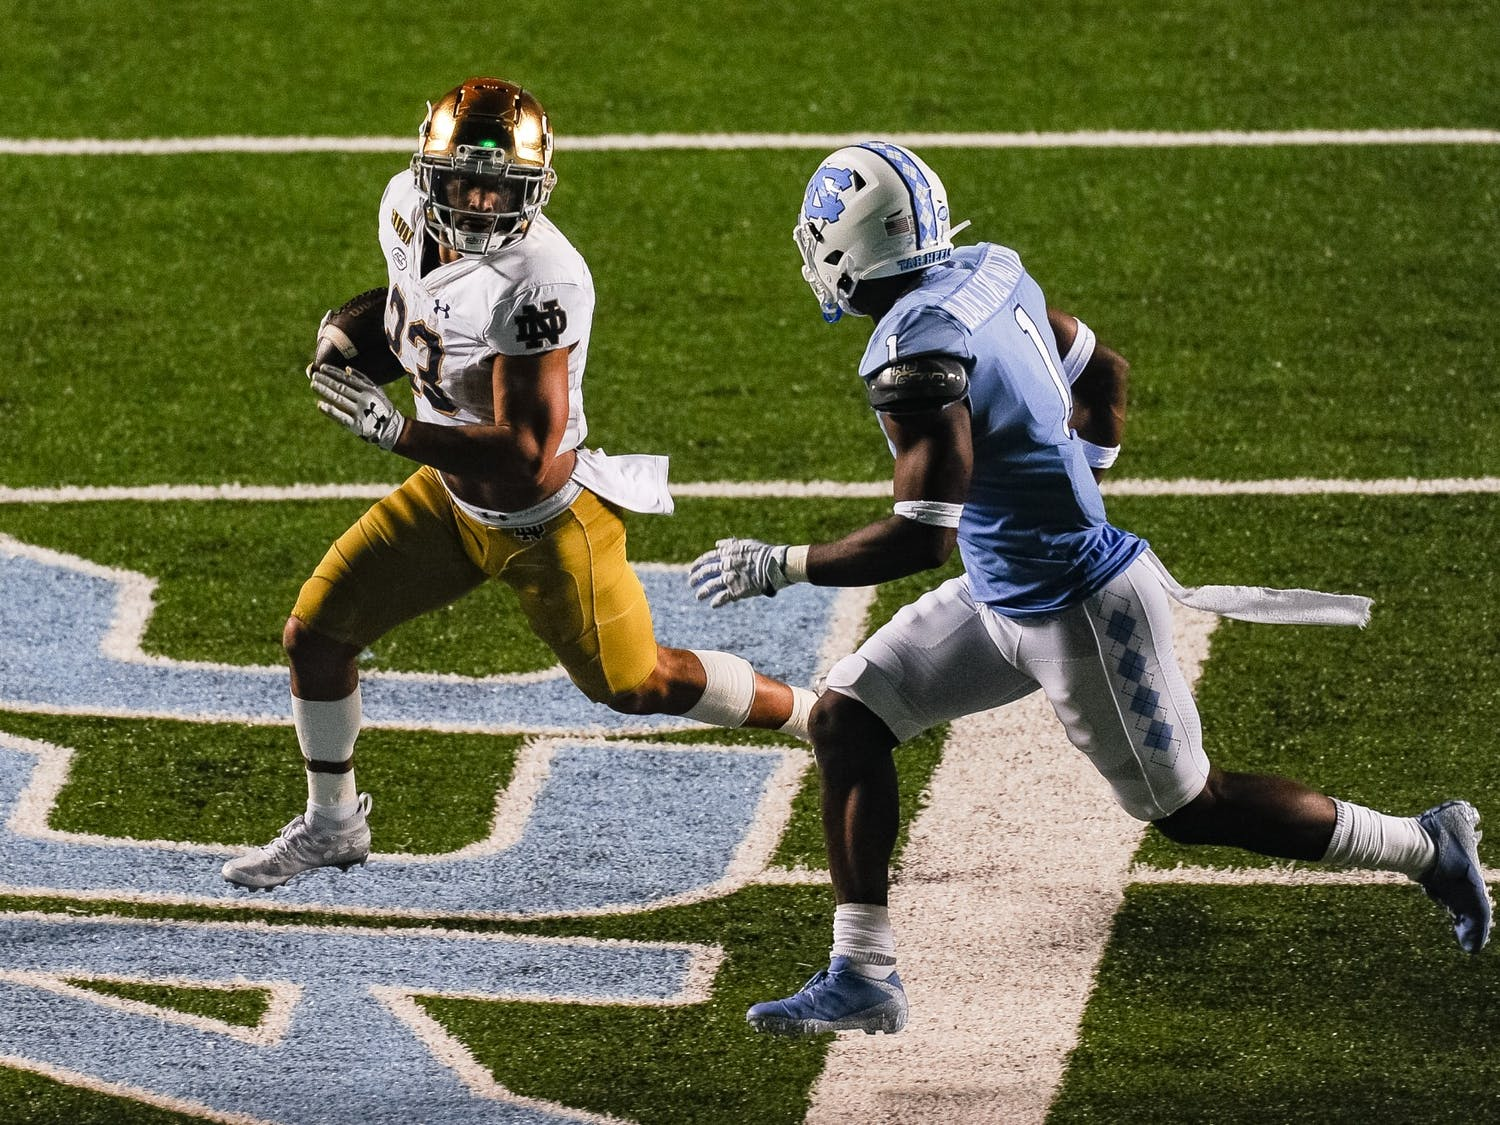 Notre Dame's sophomore running back Kyren Williams (23) runs downfield past UNC's  sophomore corner back Kyler McMichael (1) during a game in Kenan Memorial Stadium on Friday, Nov. 27, 2020. Notre Dame beat UNC 31-17.